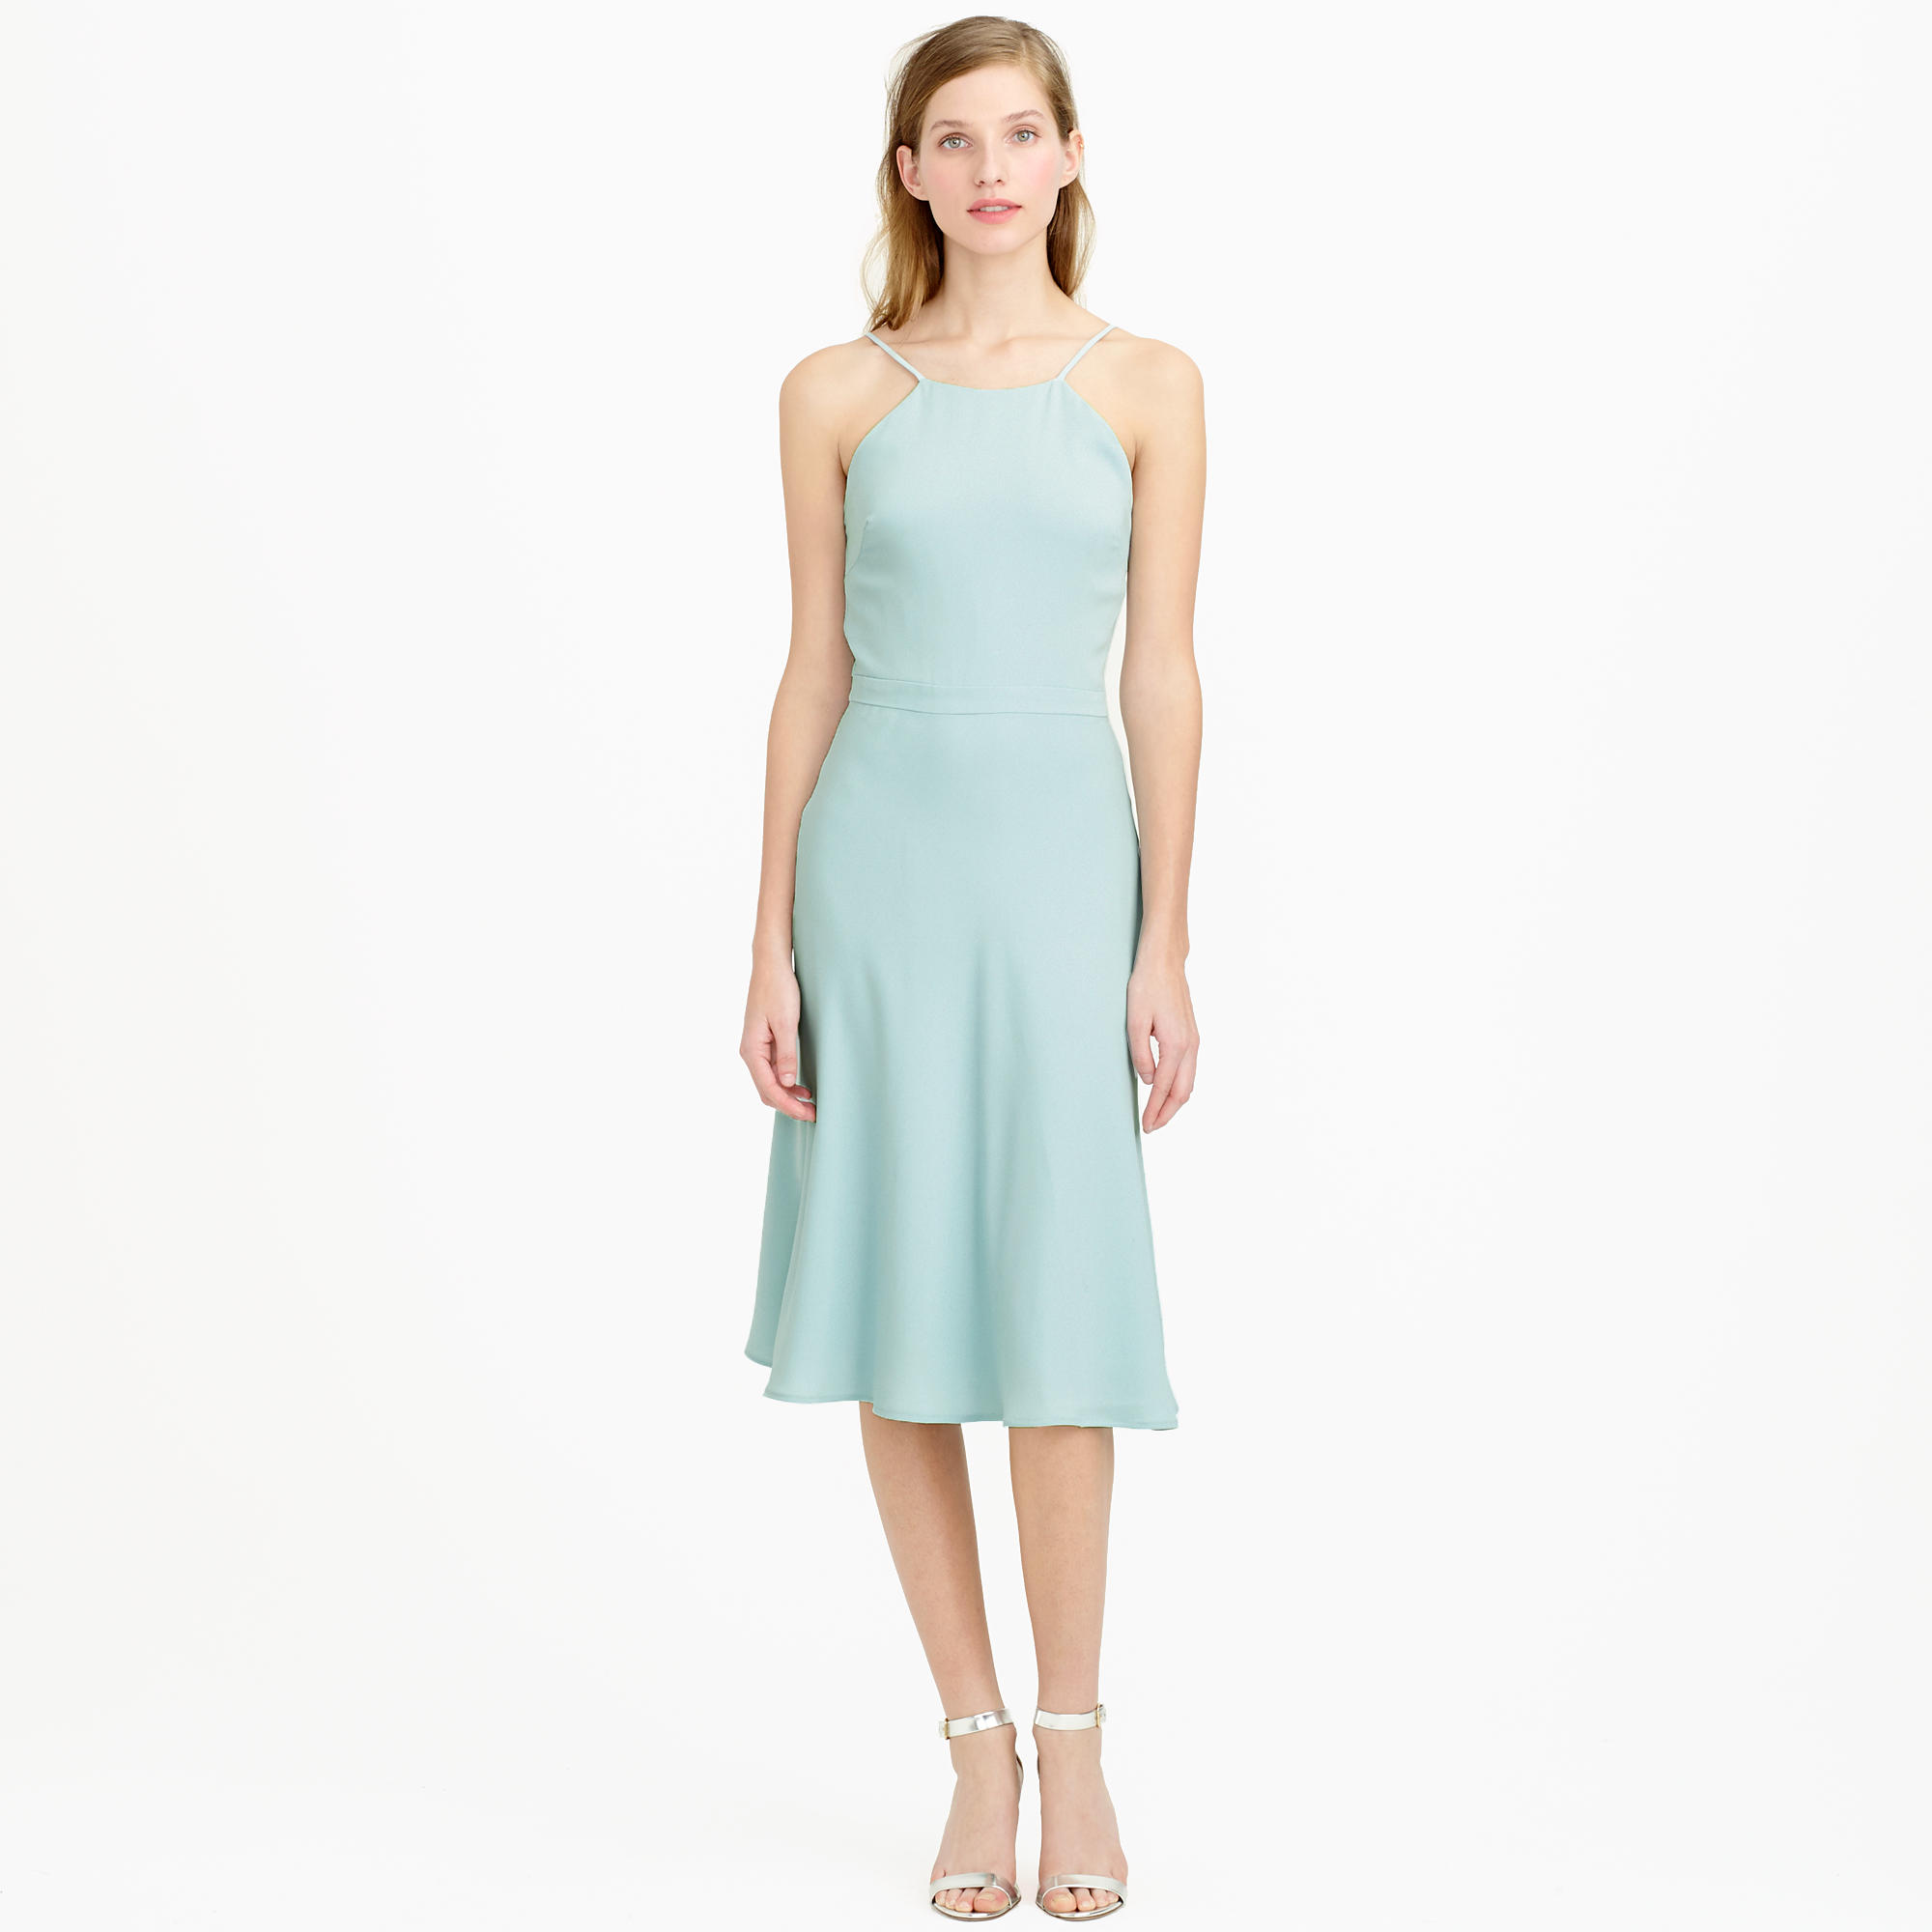 Bridesmaid Dresses Miami Stores 10